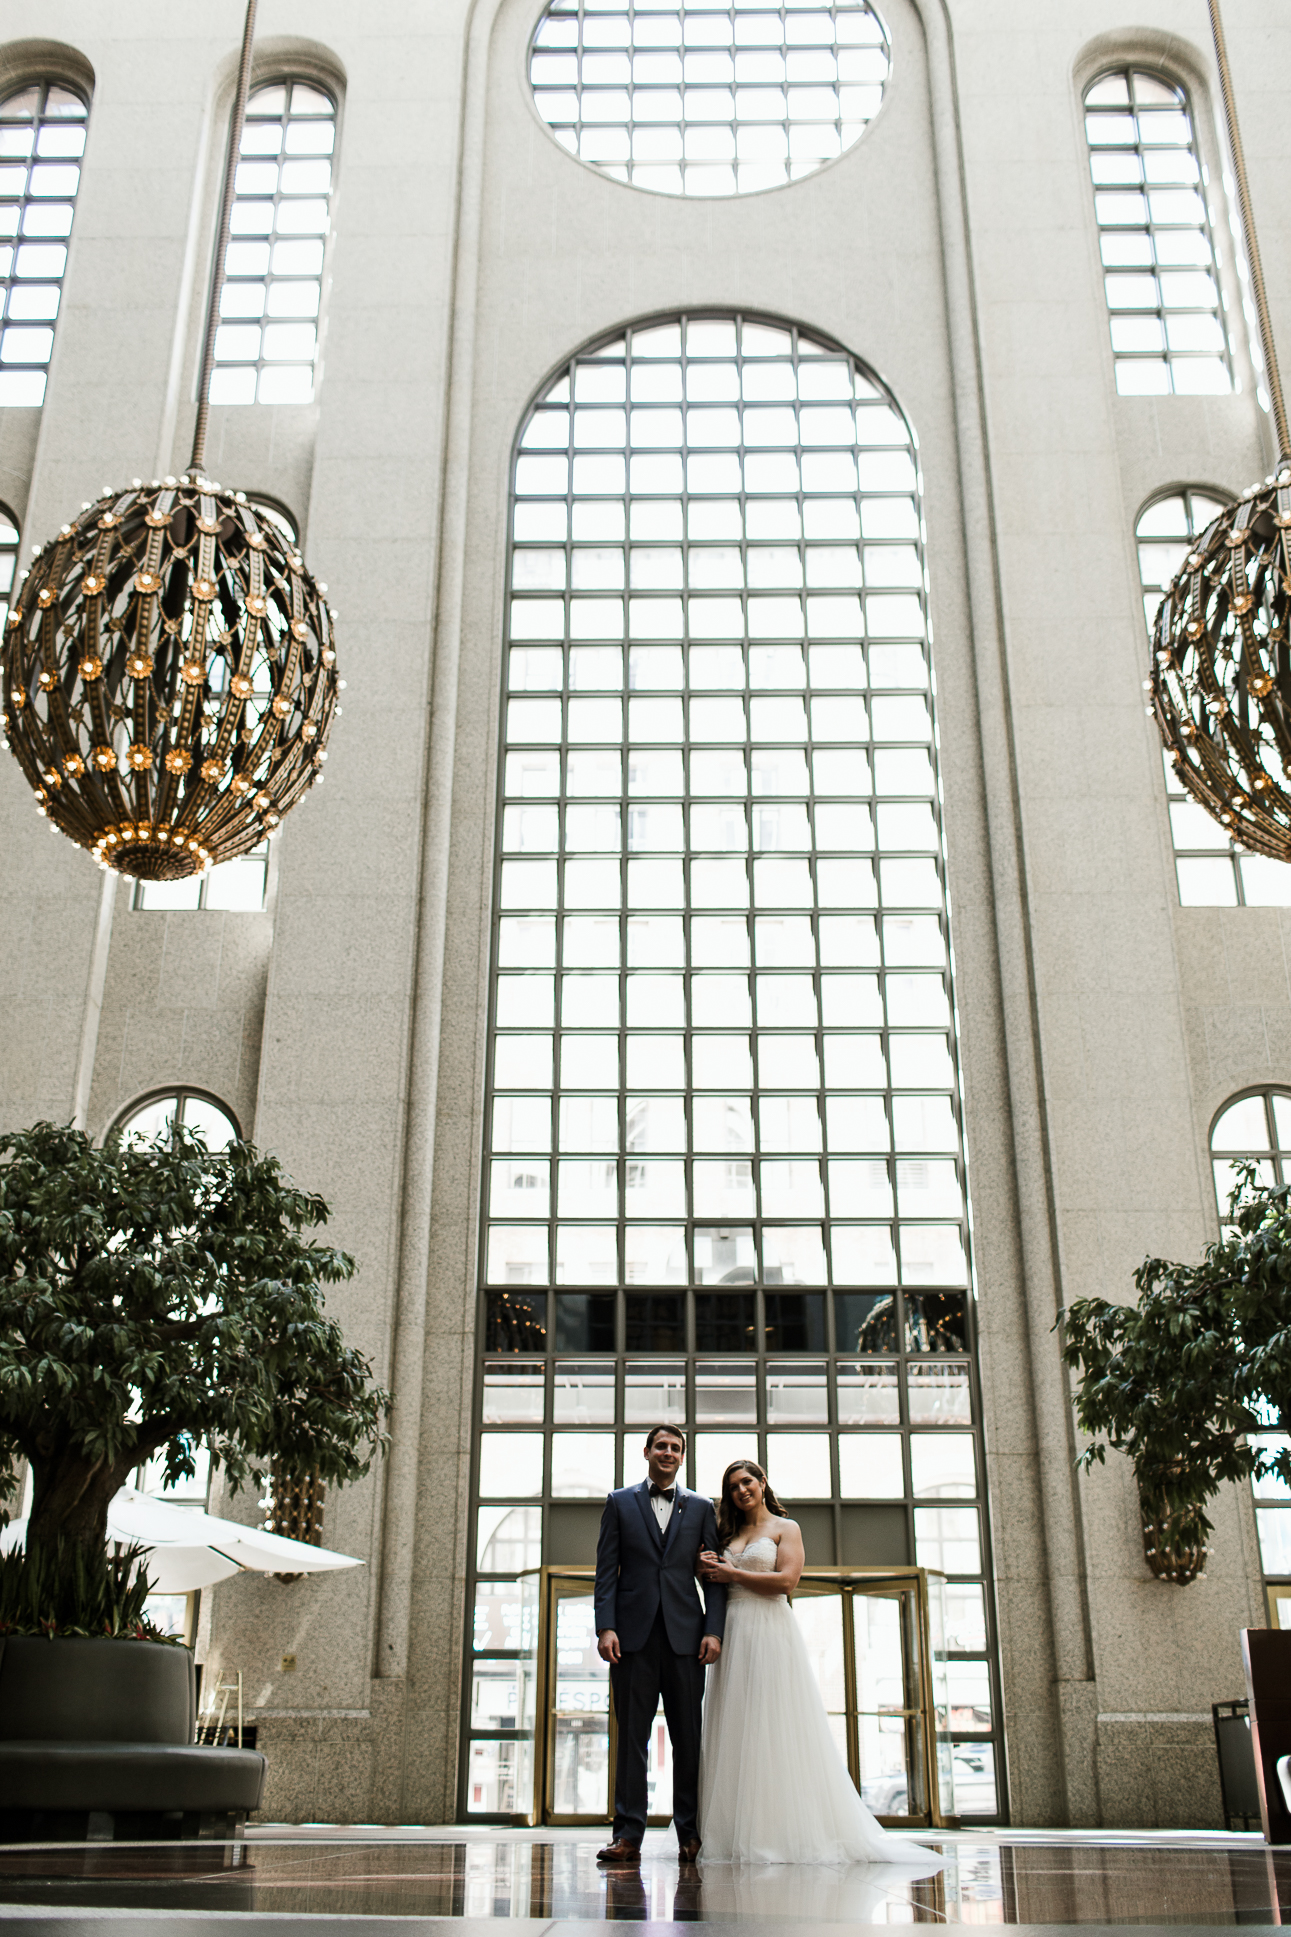 Gianna Keiko Atlanta NYC California Wedding Elopement Photographer_Sneak Peek-11.jpg